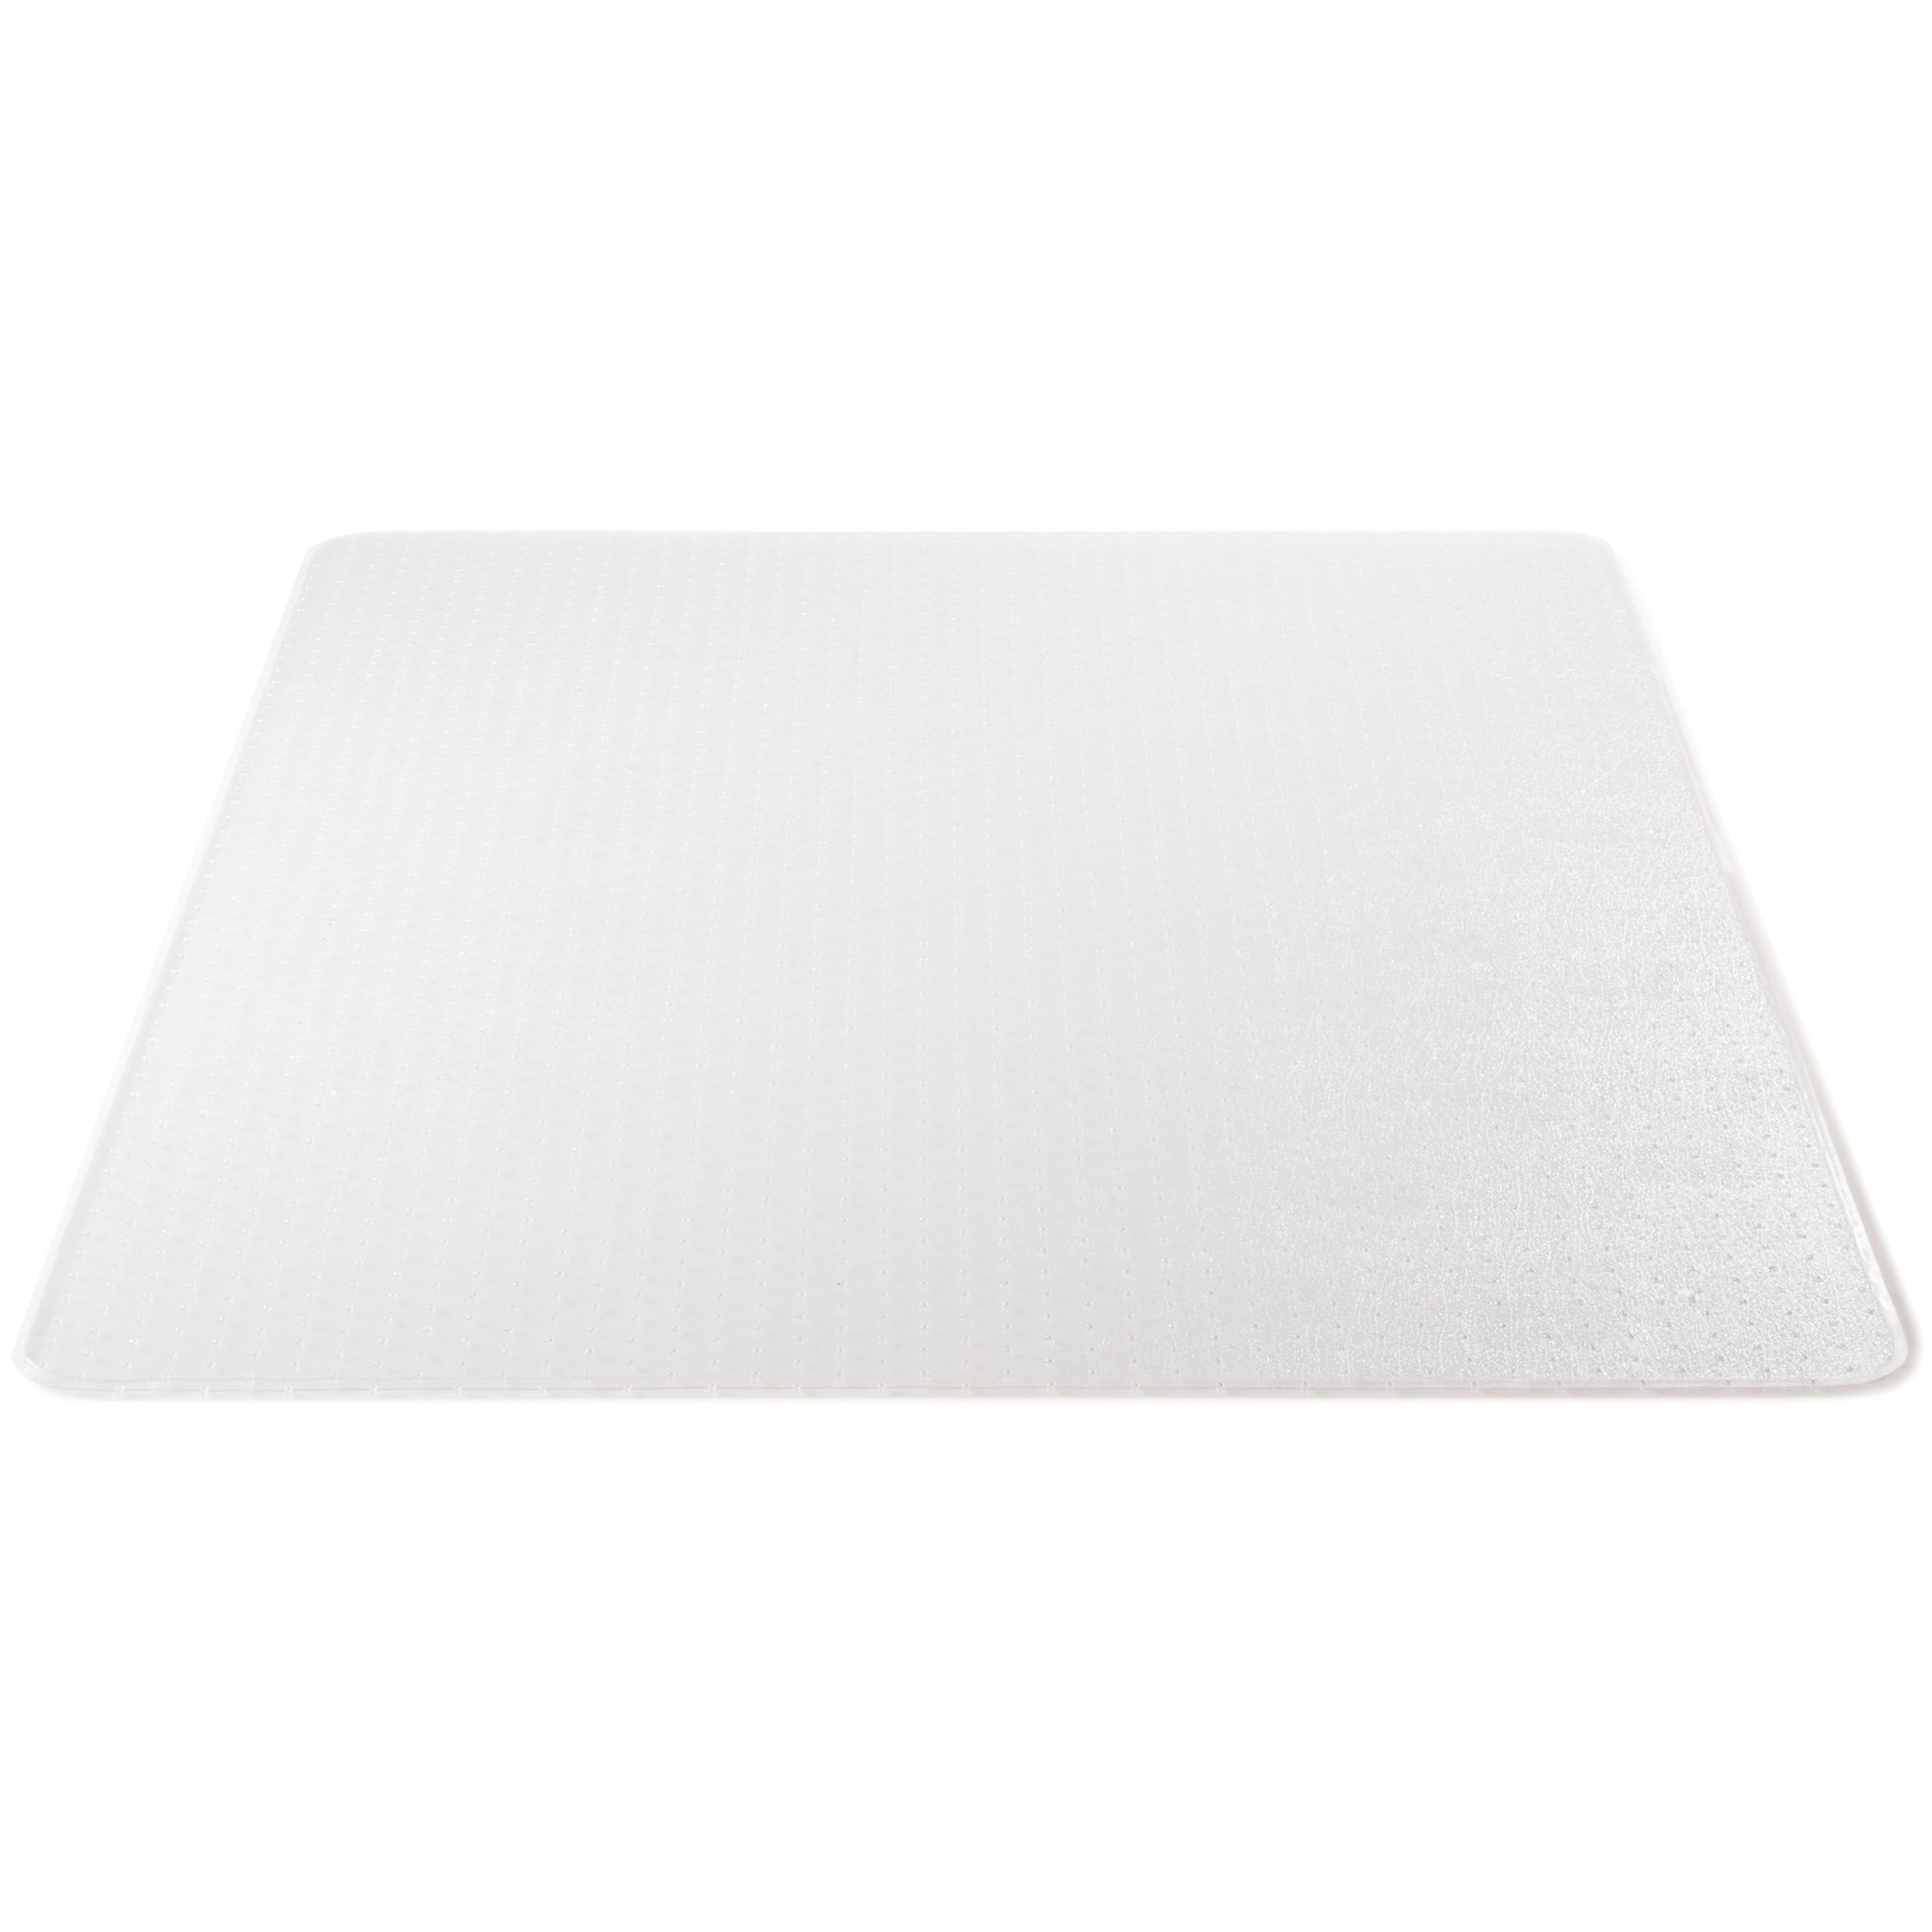 Deflecto SuperMat Clear Chair Mat, Medium Pile Carpet Use, Rectangle, Beveled Edge, 46 x 60 Inches (CM14443FCOM)